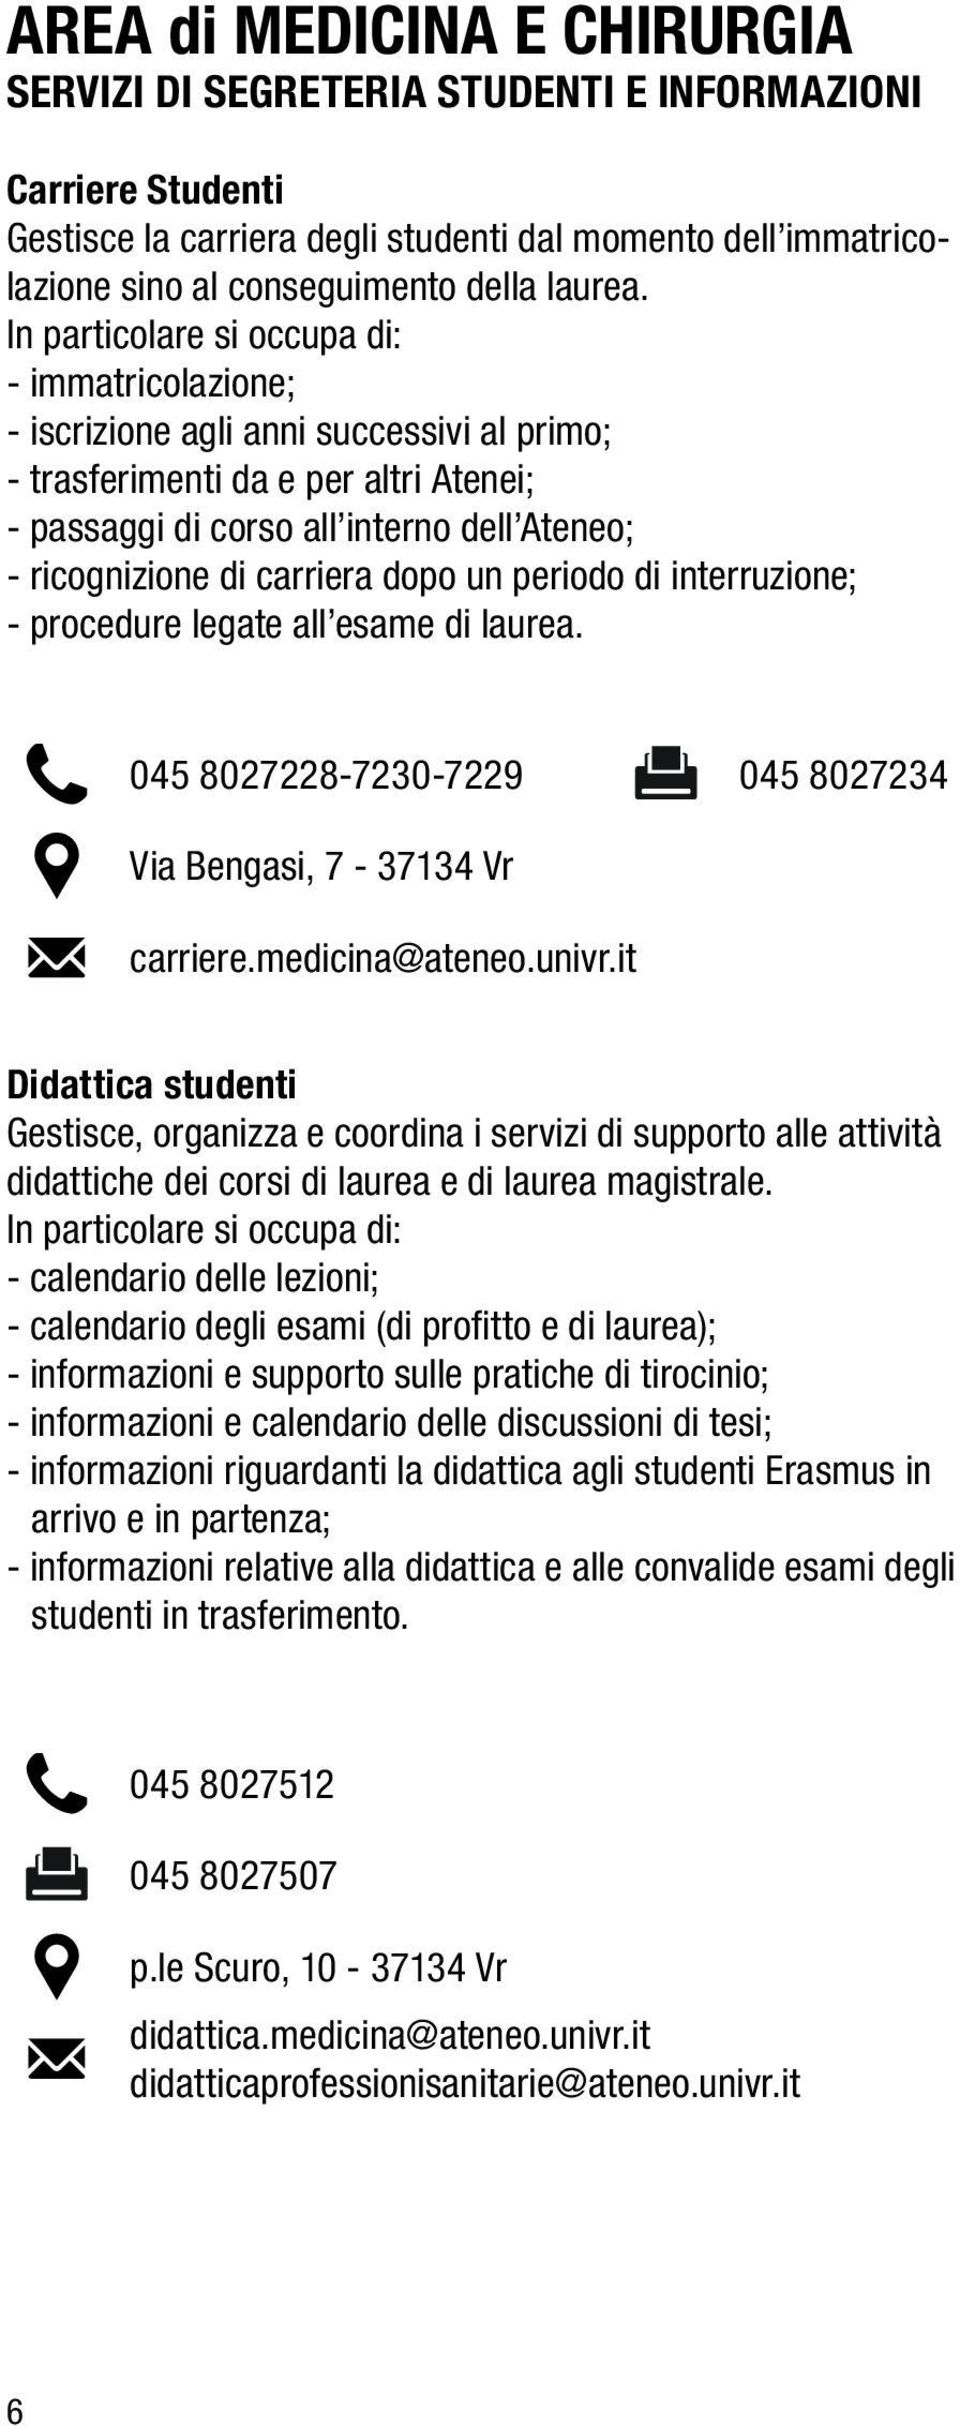 carriera dopo un periodo di interruzione; - procedure legate all esame di laurea. 045 8027228-7230-7229 045 8027234 Via Bengasi, 7-37134 Vr carriere.medicina@ateneo.univr.